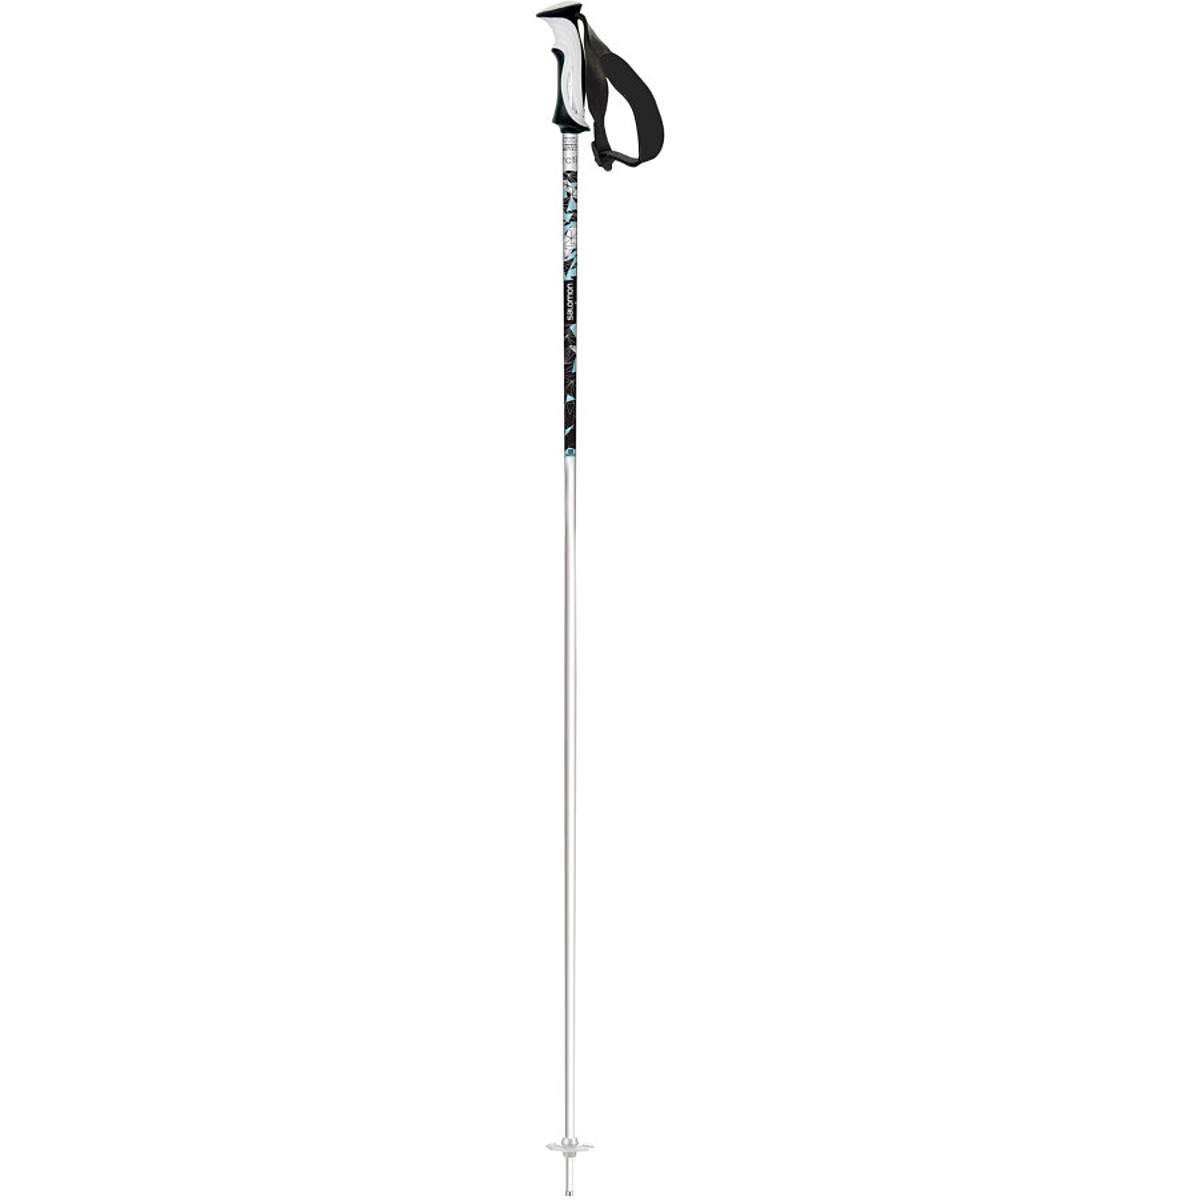 Salomon Arctic Lady Ski Pole